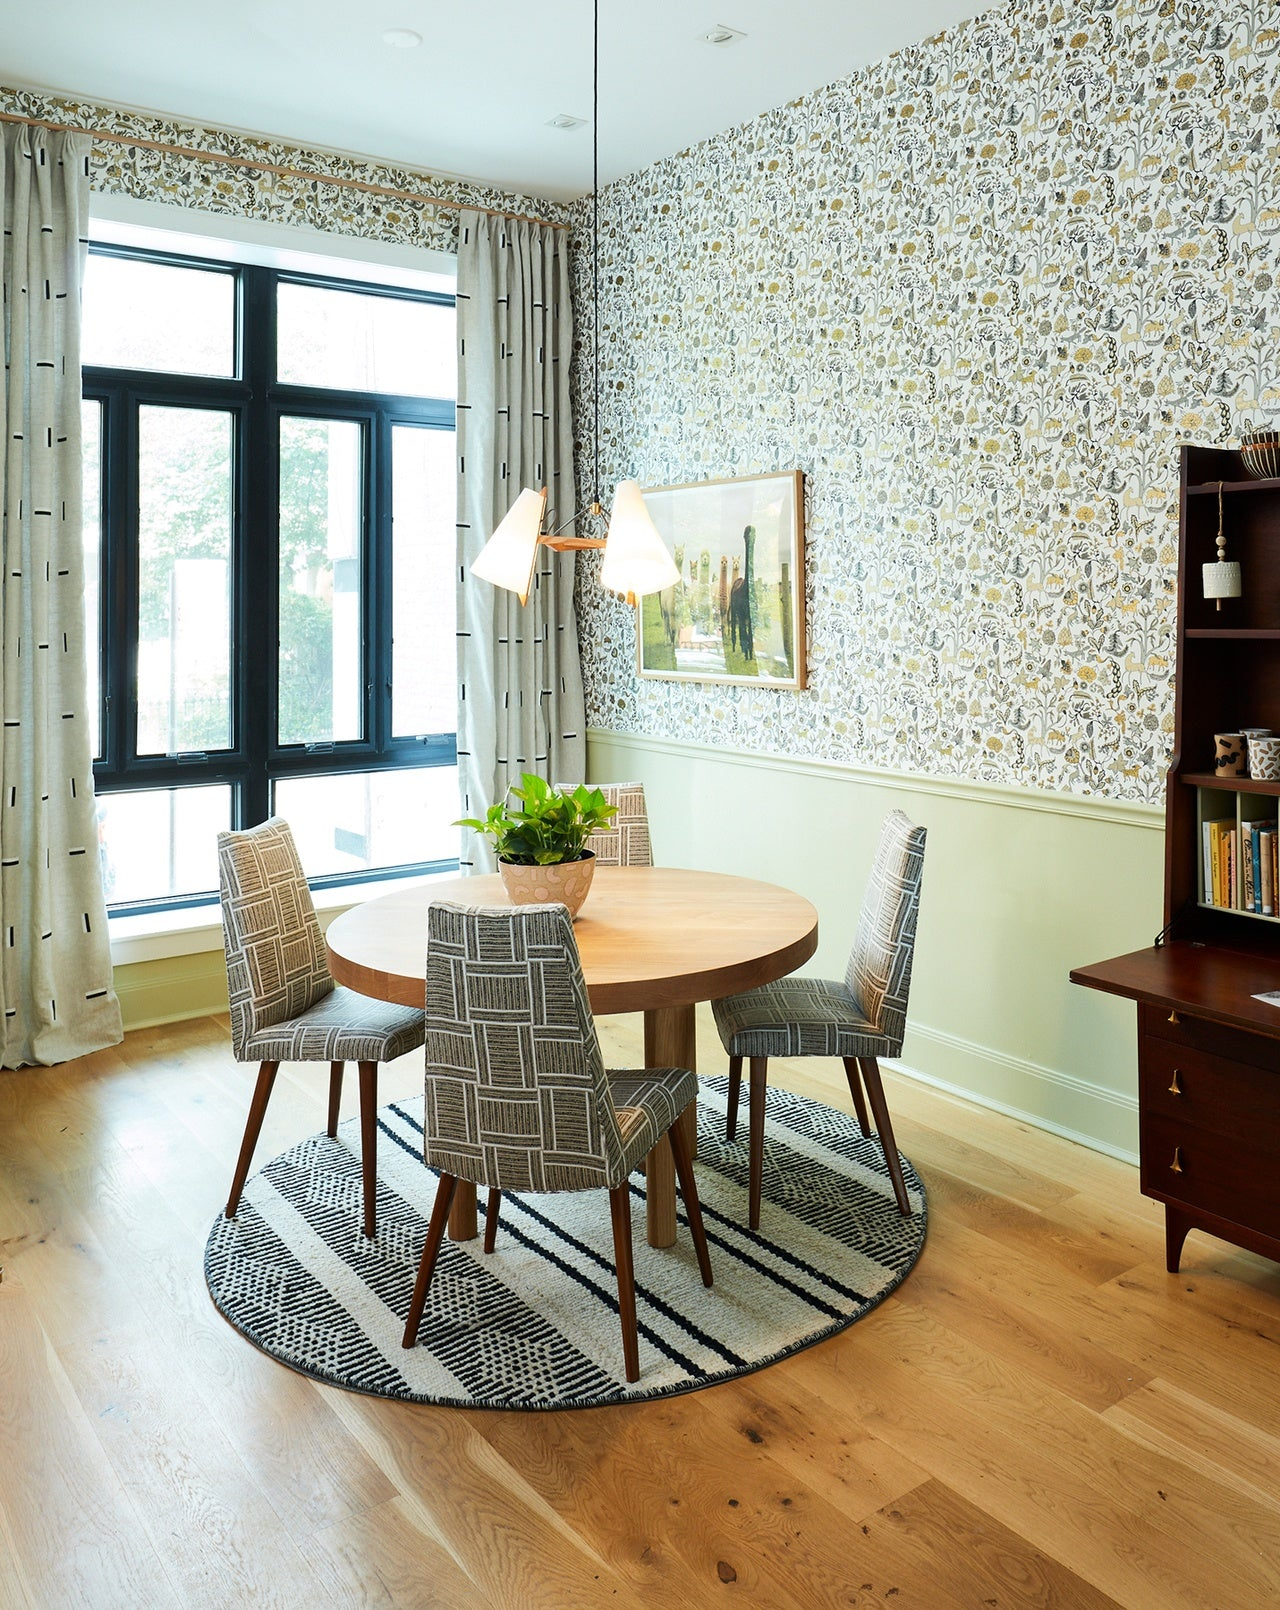 H&W inside the 2019 real simple home | Foret Gold wallpaper | Julia Rothman | Hygge & West